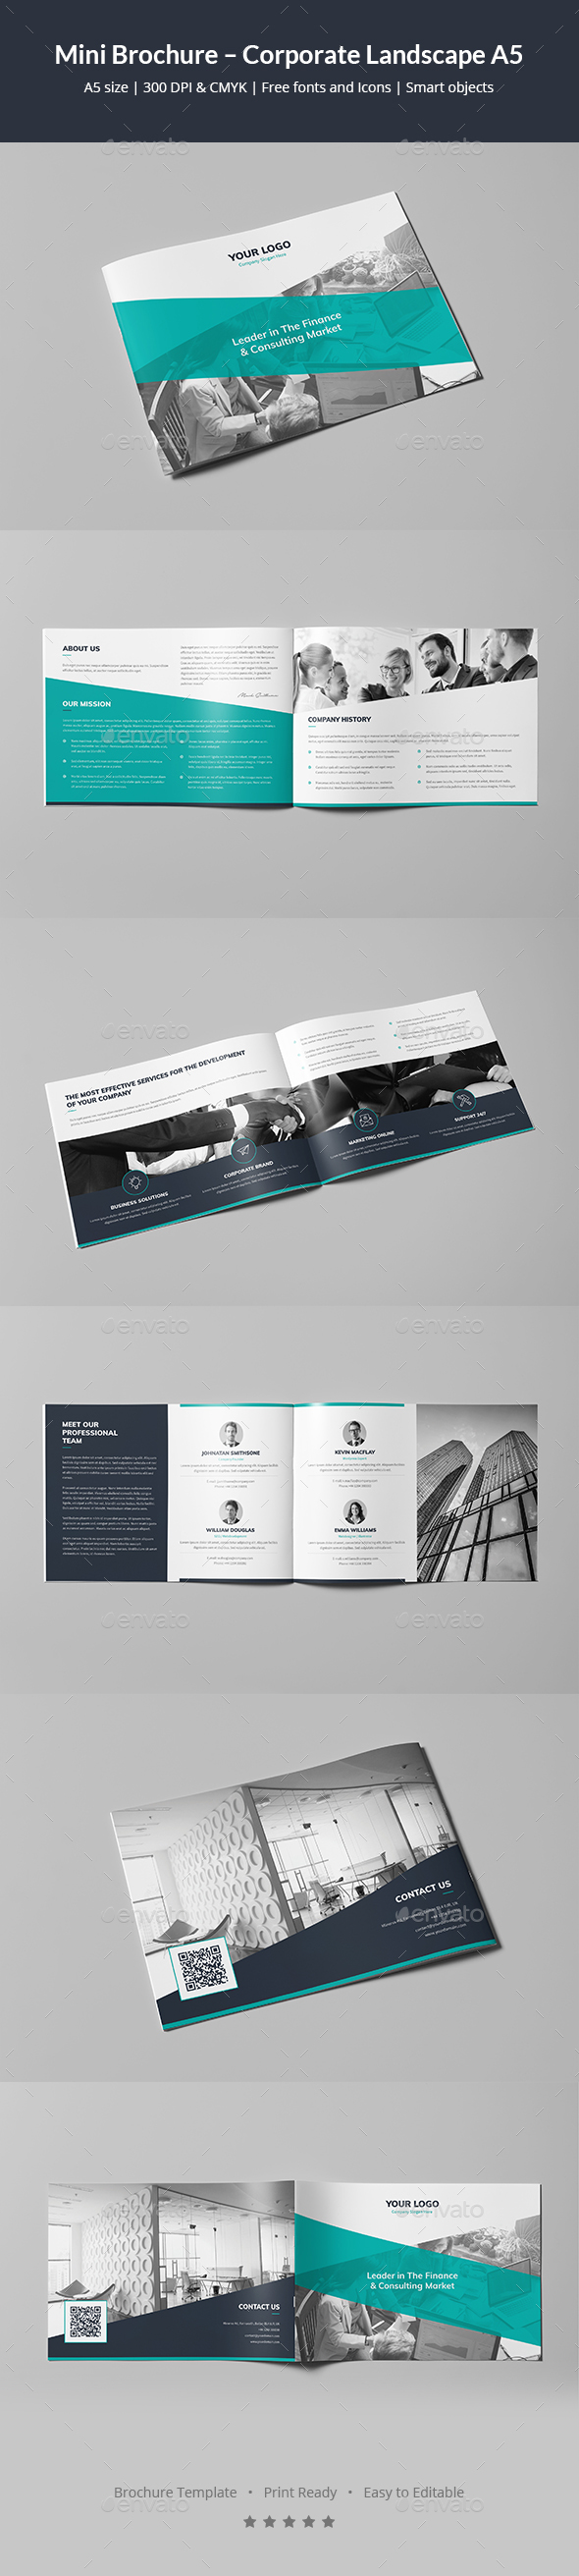 GraphicRiver Mini Brochure Corporate Landscape A5 21058758